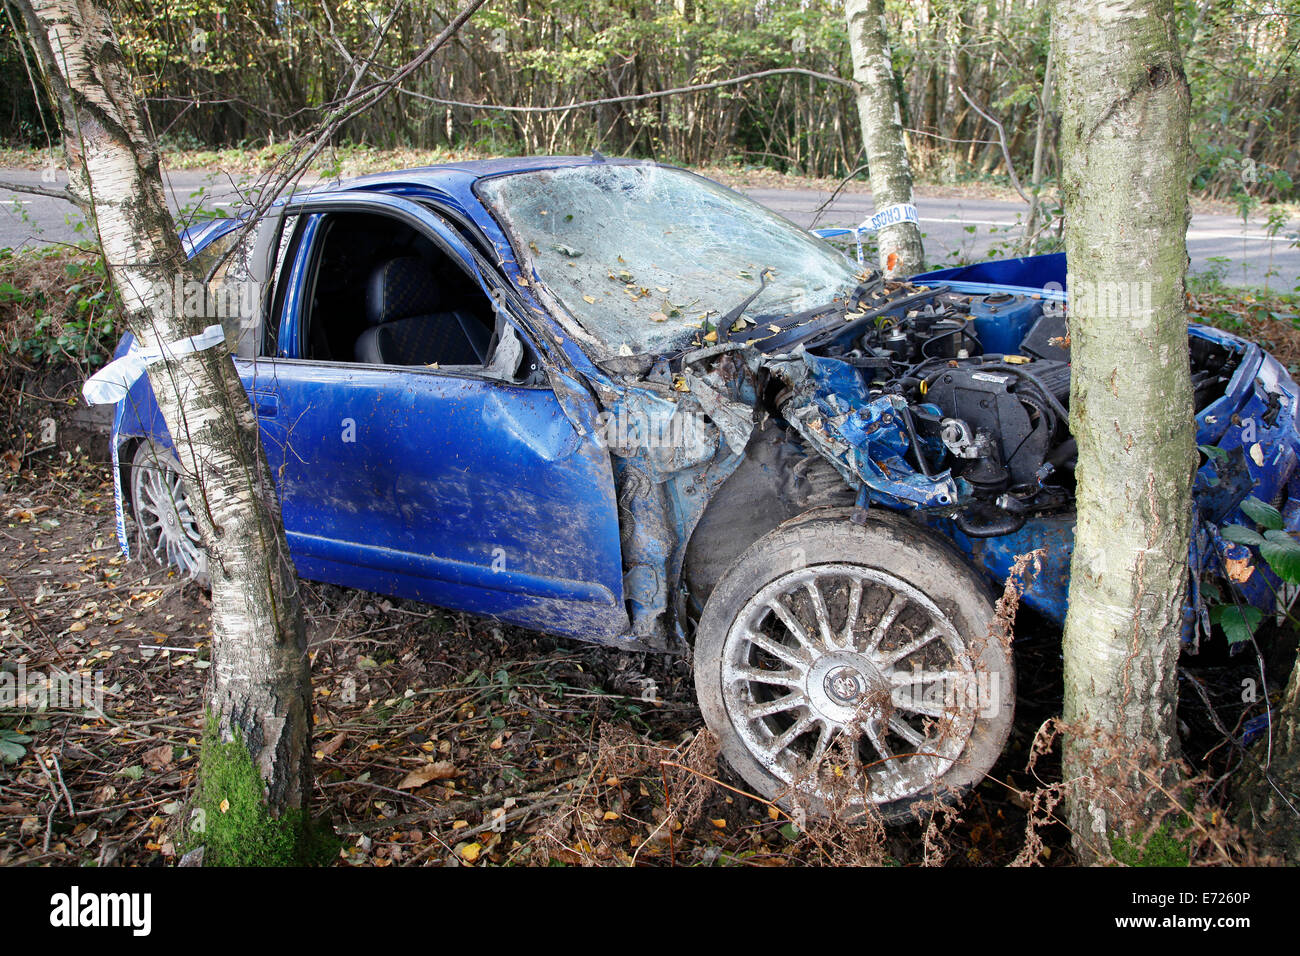 Transport, Road, Cars, Accident  Rover car crashed into tree. - Stock Image